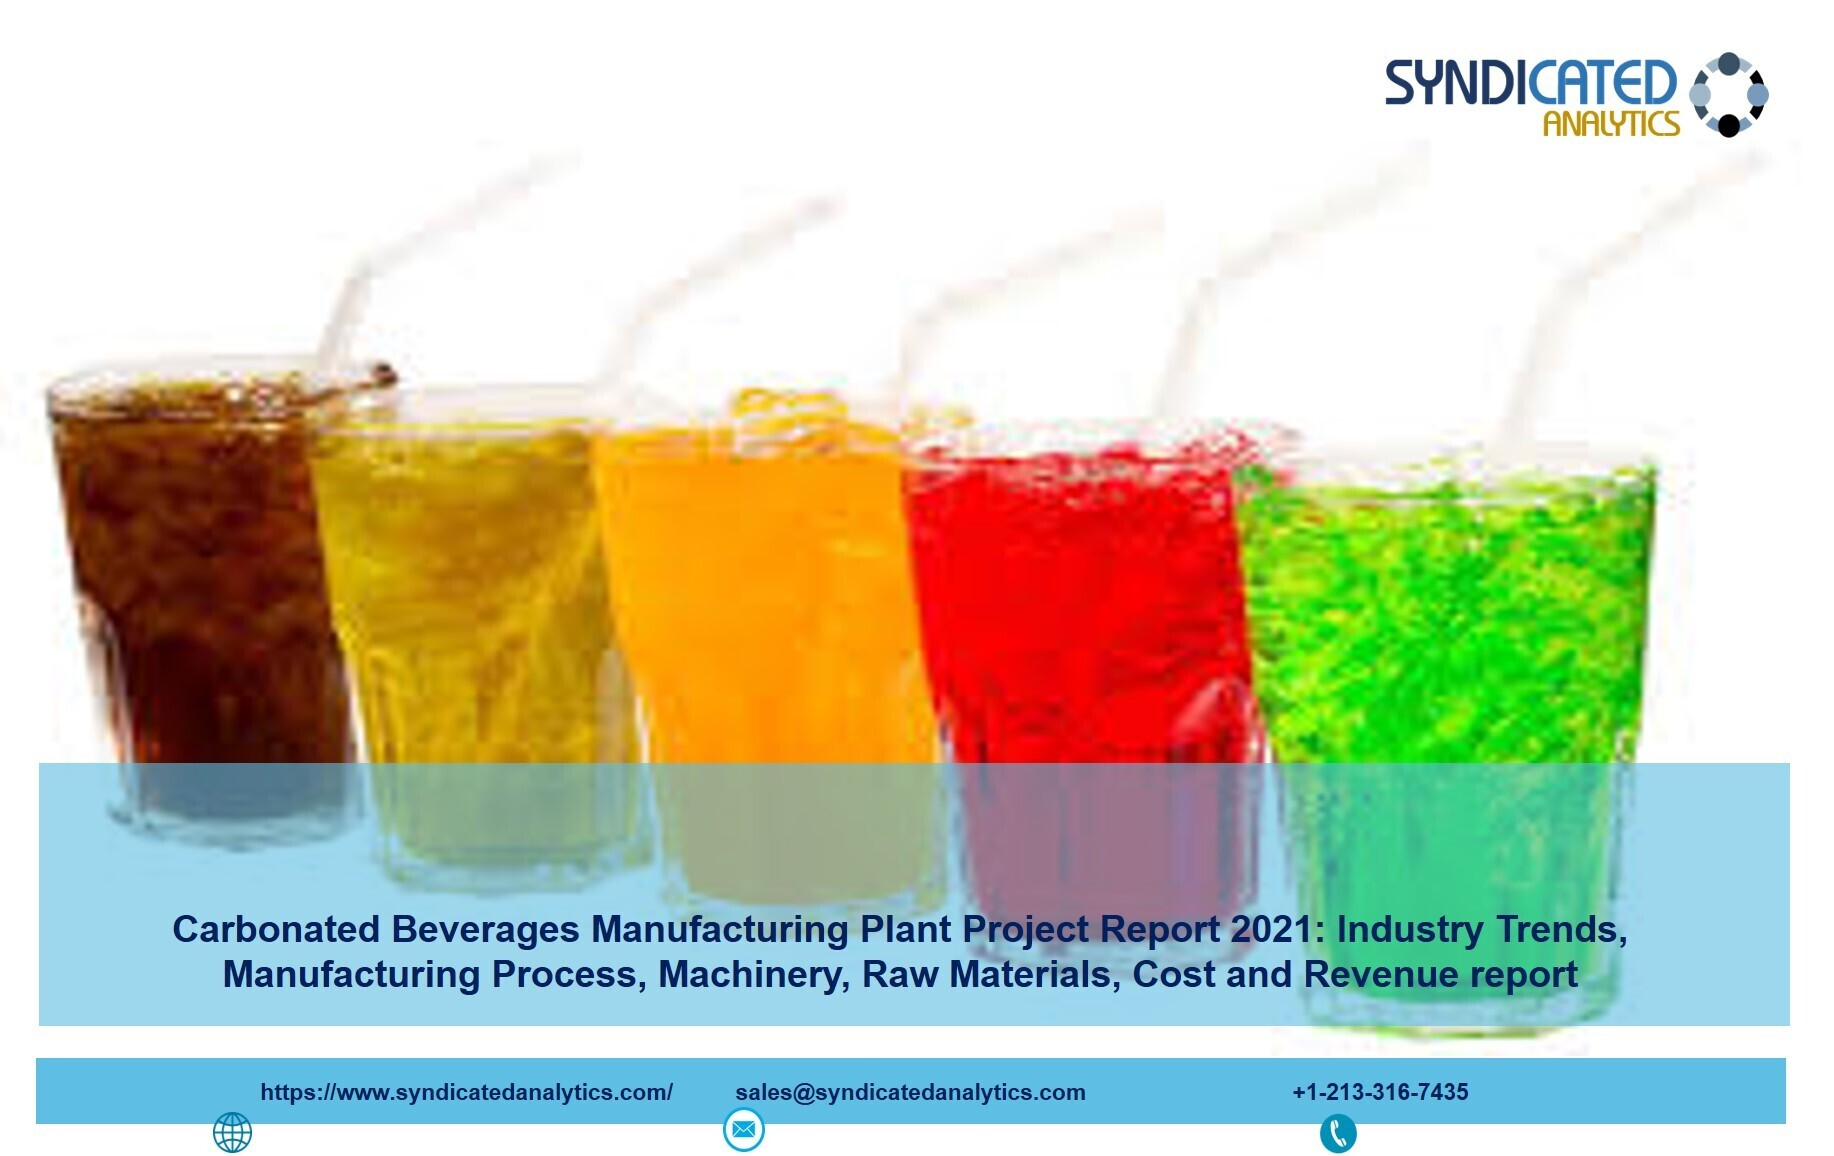 Detailed Project Report On Carbonated Beverages Manufacturing Plant 2021-2026